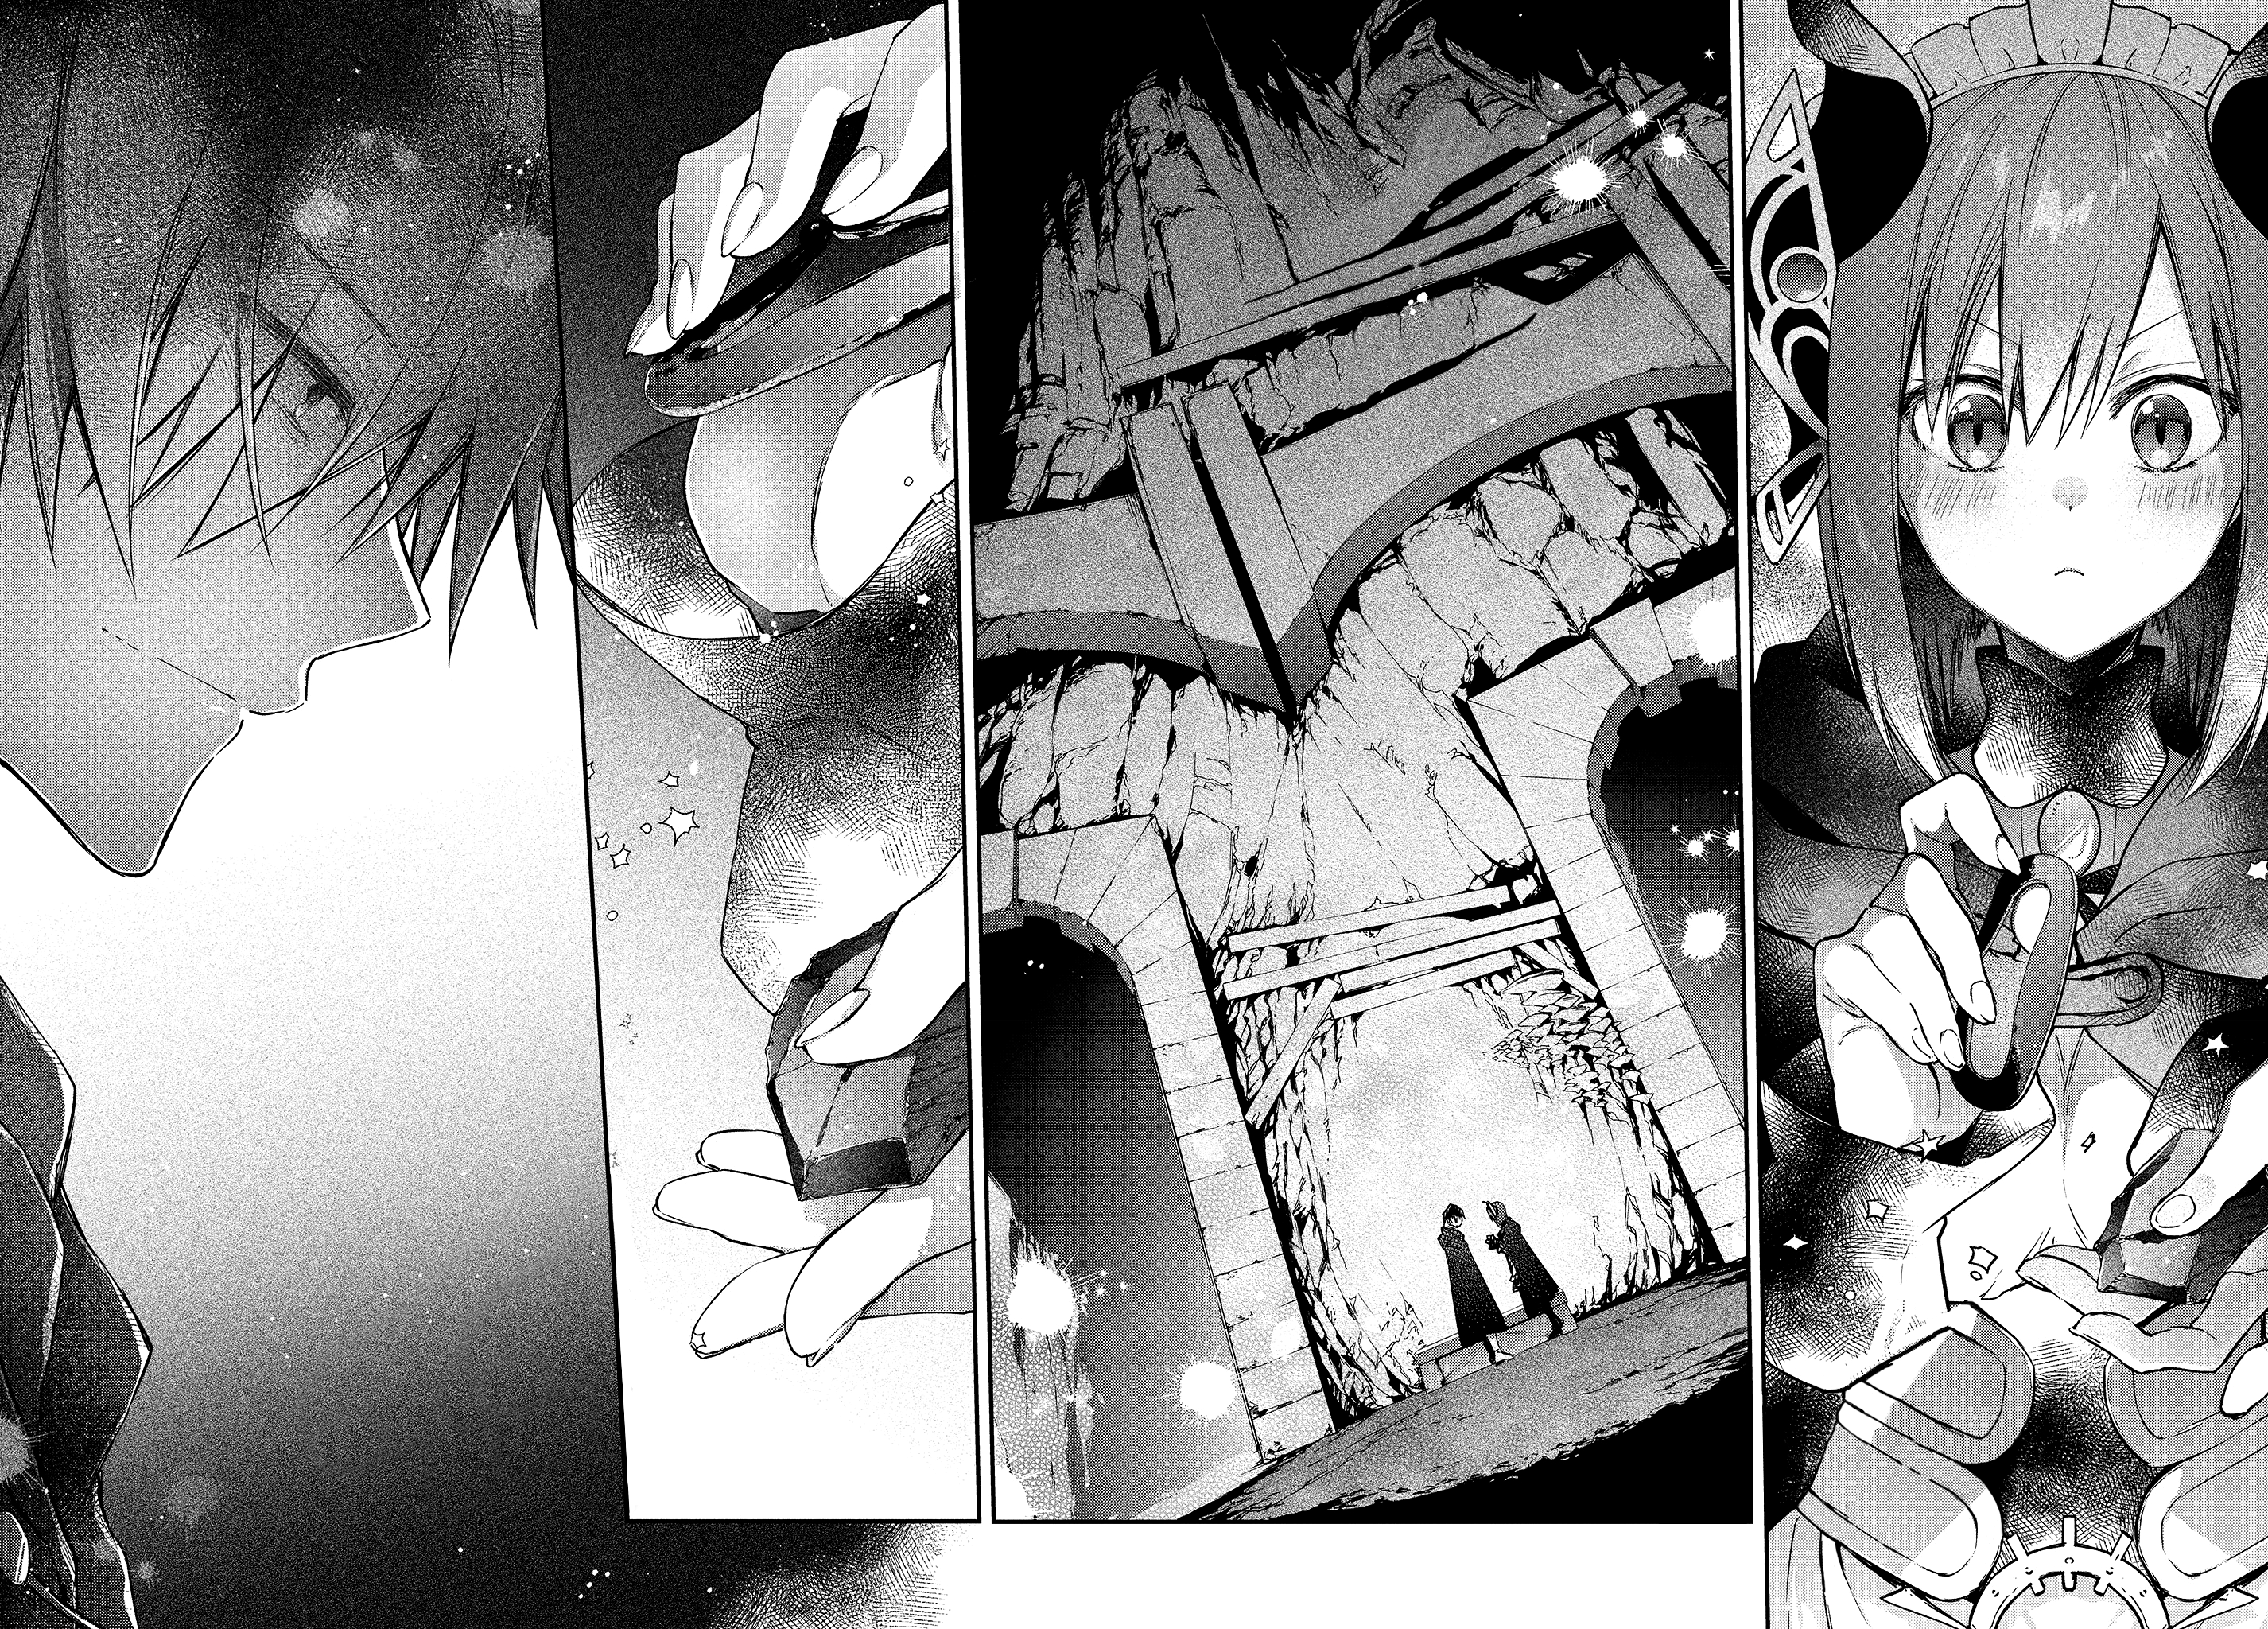 Manga The Legendary Rebuilding of a World by a Realist Demon King - Chapter 13 Page 23